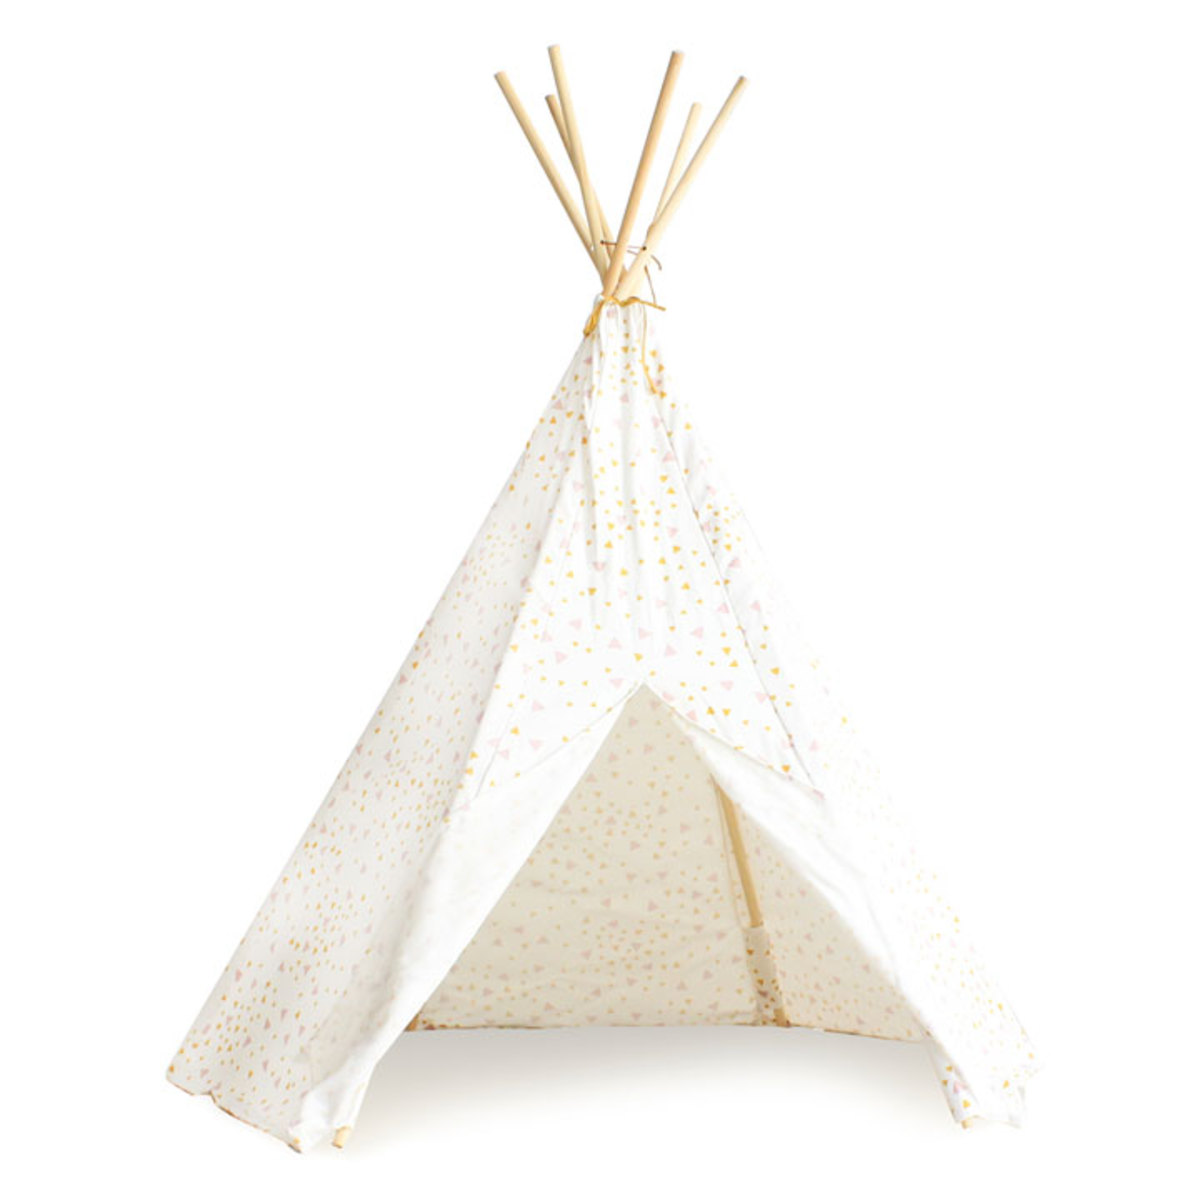 tipi arizona confettis miel rose 2000000055725 achat vente tapis veil tipi sur. Black Bedroom Furniture Sets. Home Design Ideas